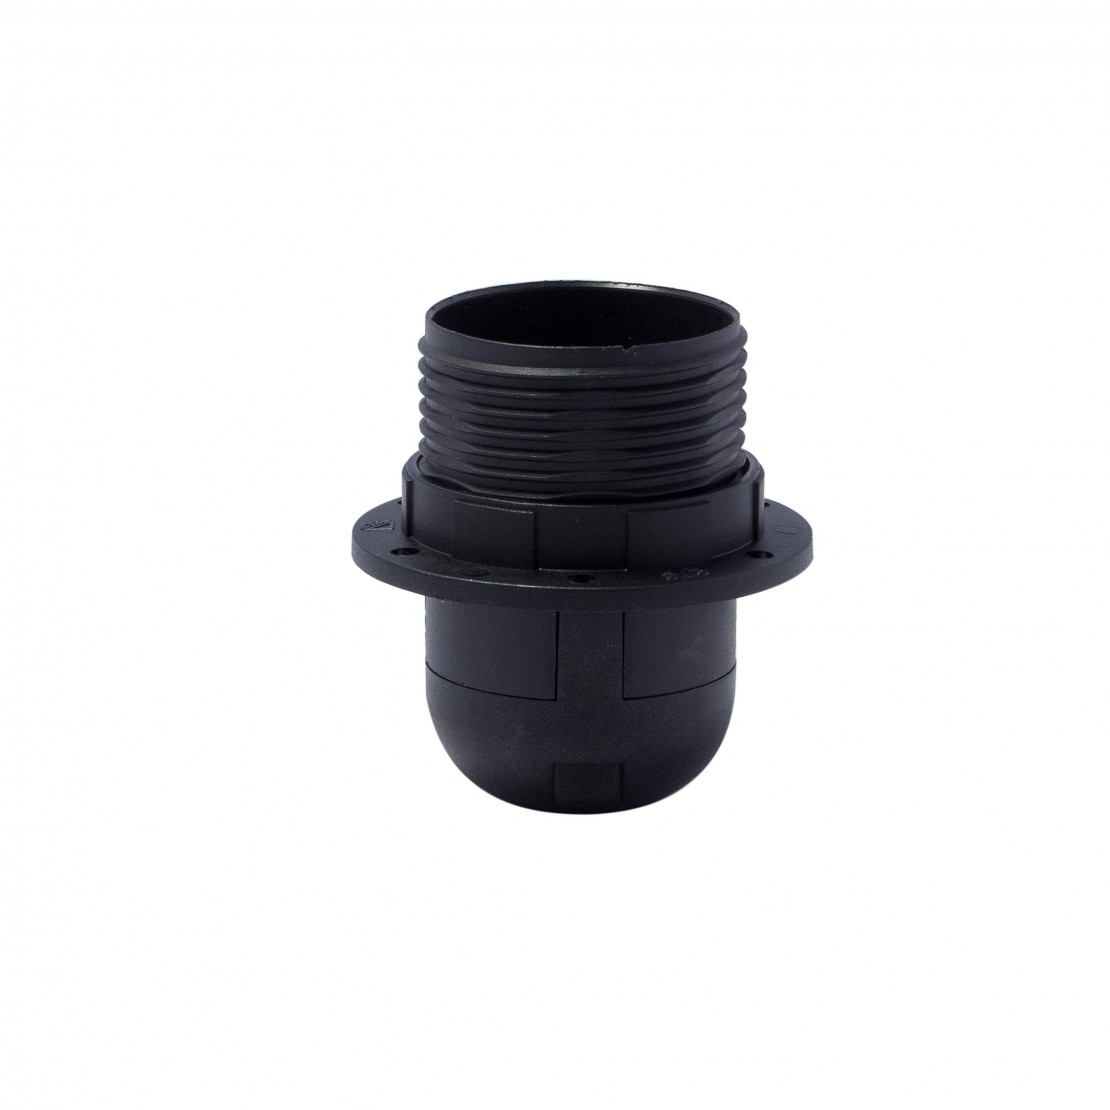 Semi-threaded E27 quick-connect lamp holder, black